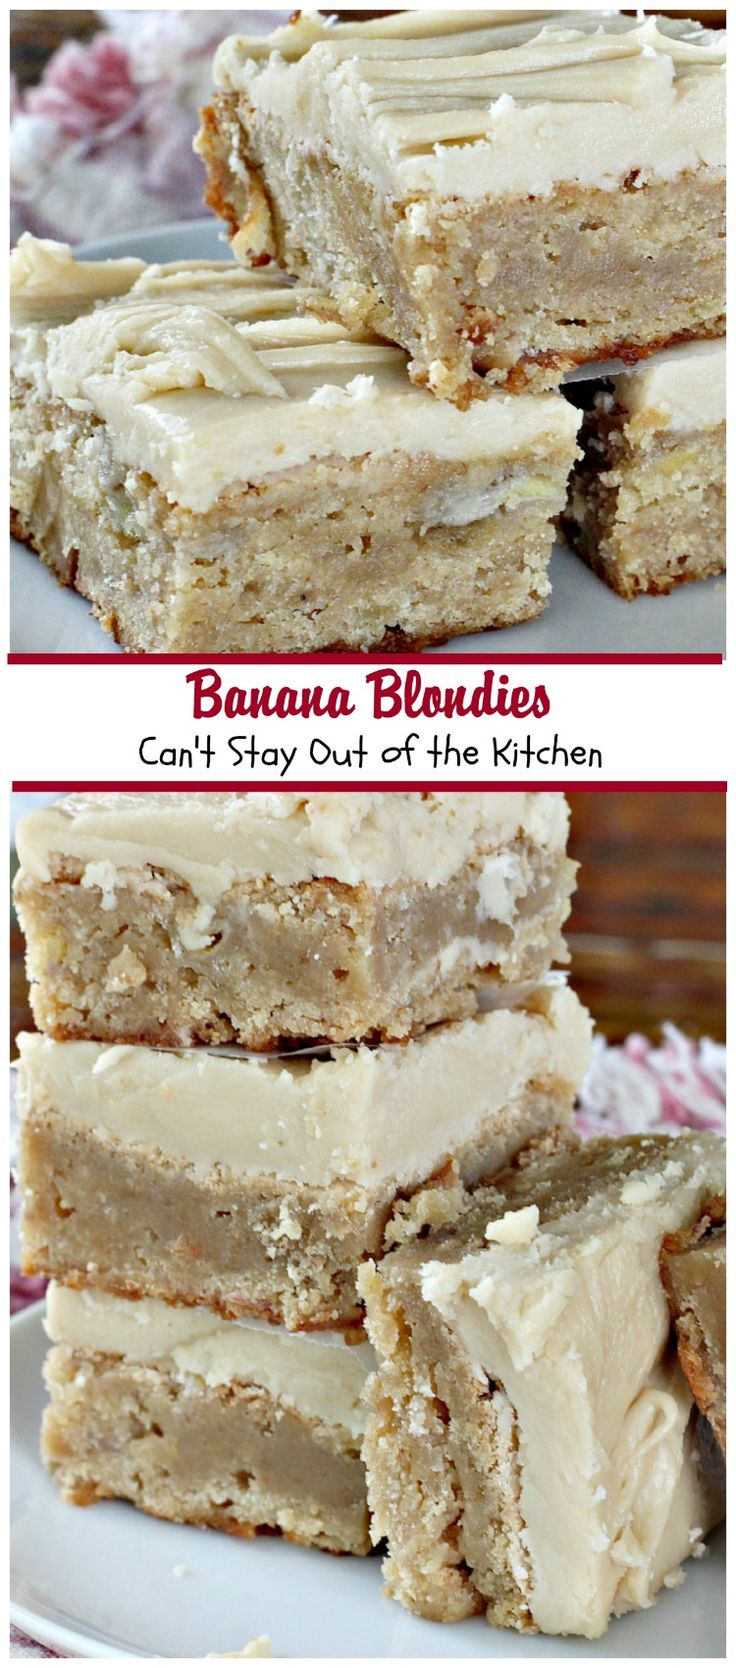 Banana Blondies | Can't Stay Out of the Kitchen | these scrumptious #brownies are to die for! The #frosting is fabulous. #bananas #cookie #dessert